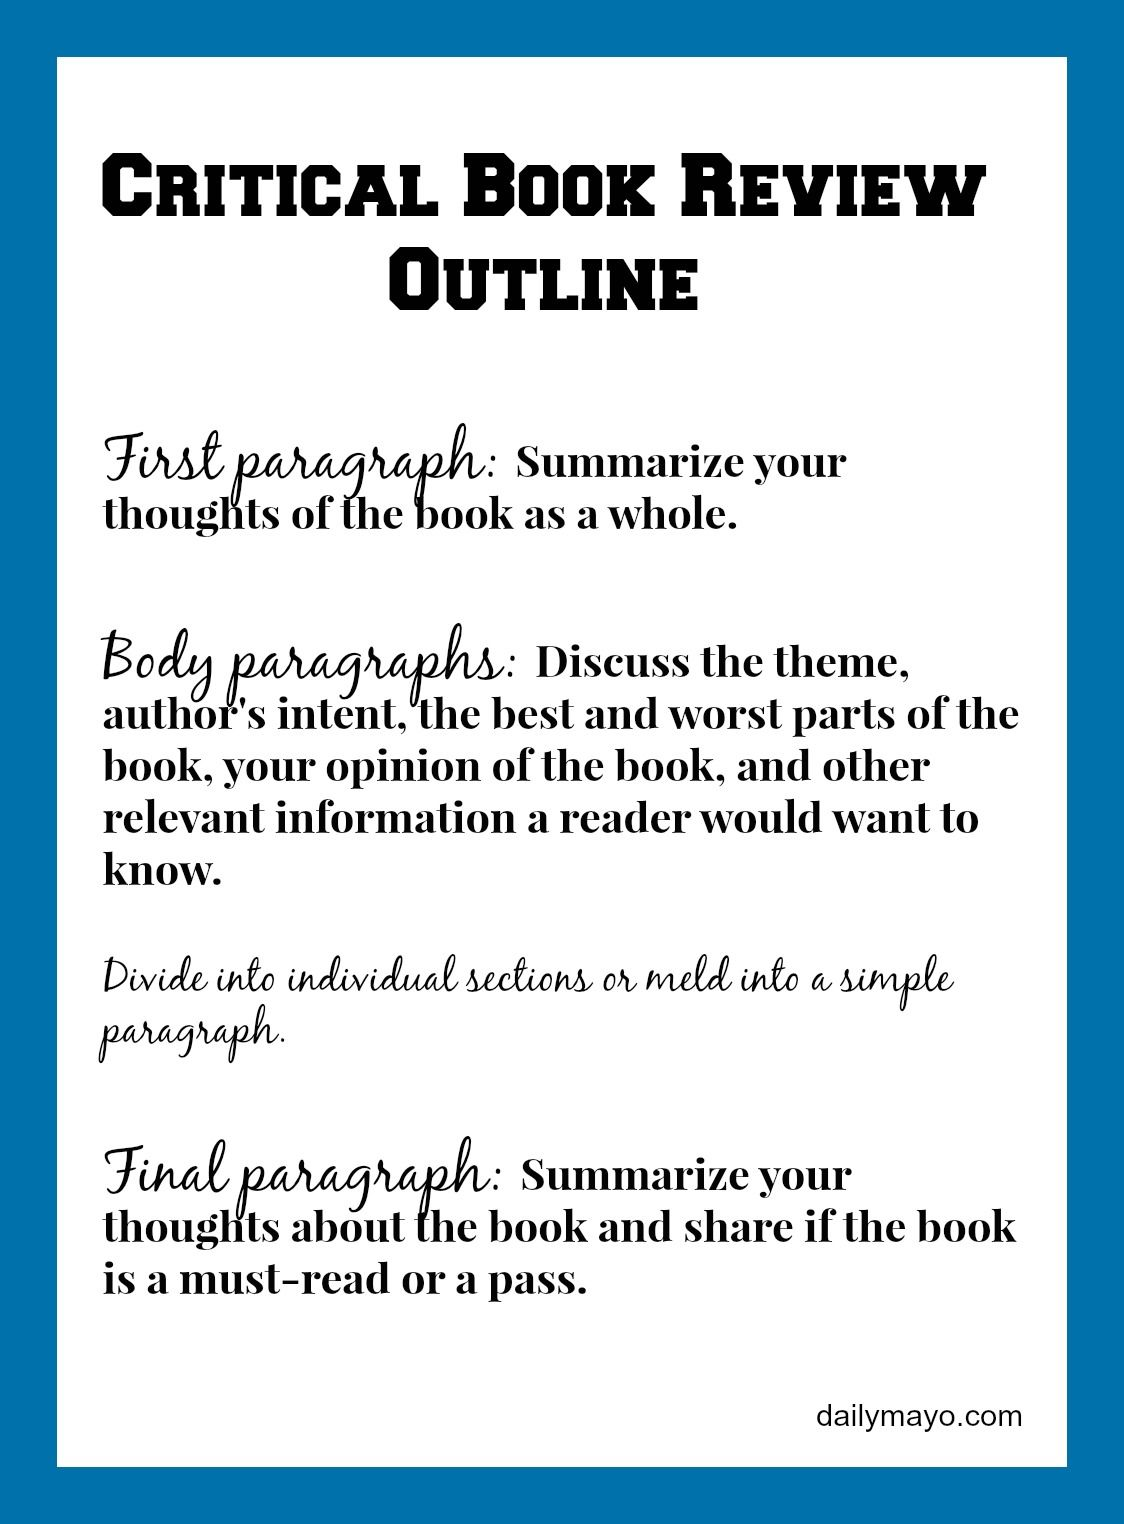 Critical Book Review Example and Tutorial  Daily Mayo  Writing a